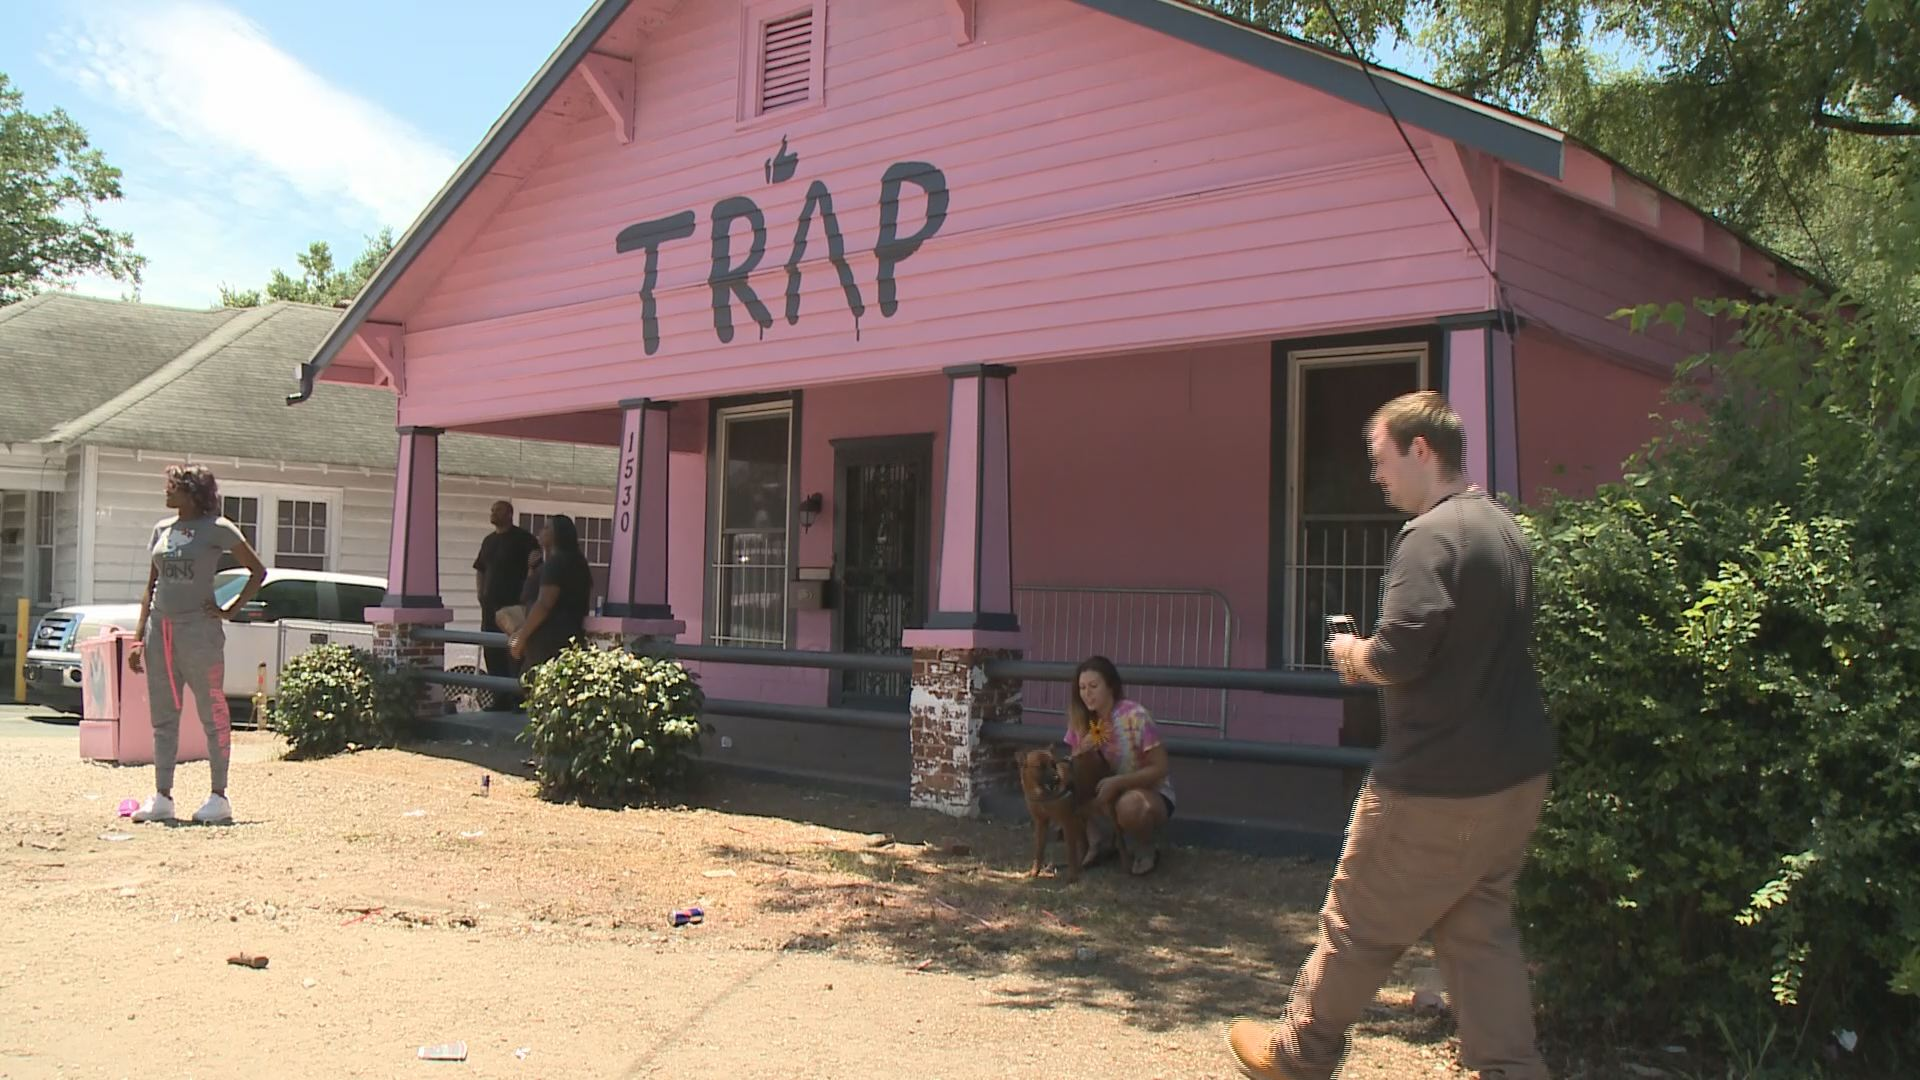 Scenic Trap House Chainz S Pink Trap House Makes A Comeback Sort Pink Traphouse Wallpaper 2 Chainz Trap House Lyrics 2 Chainz Trap House Song List curbed 2 Chainz Trap House